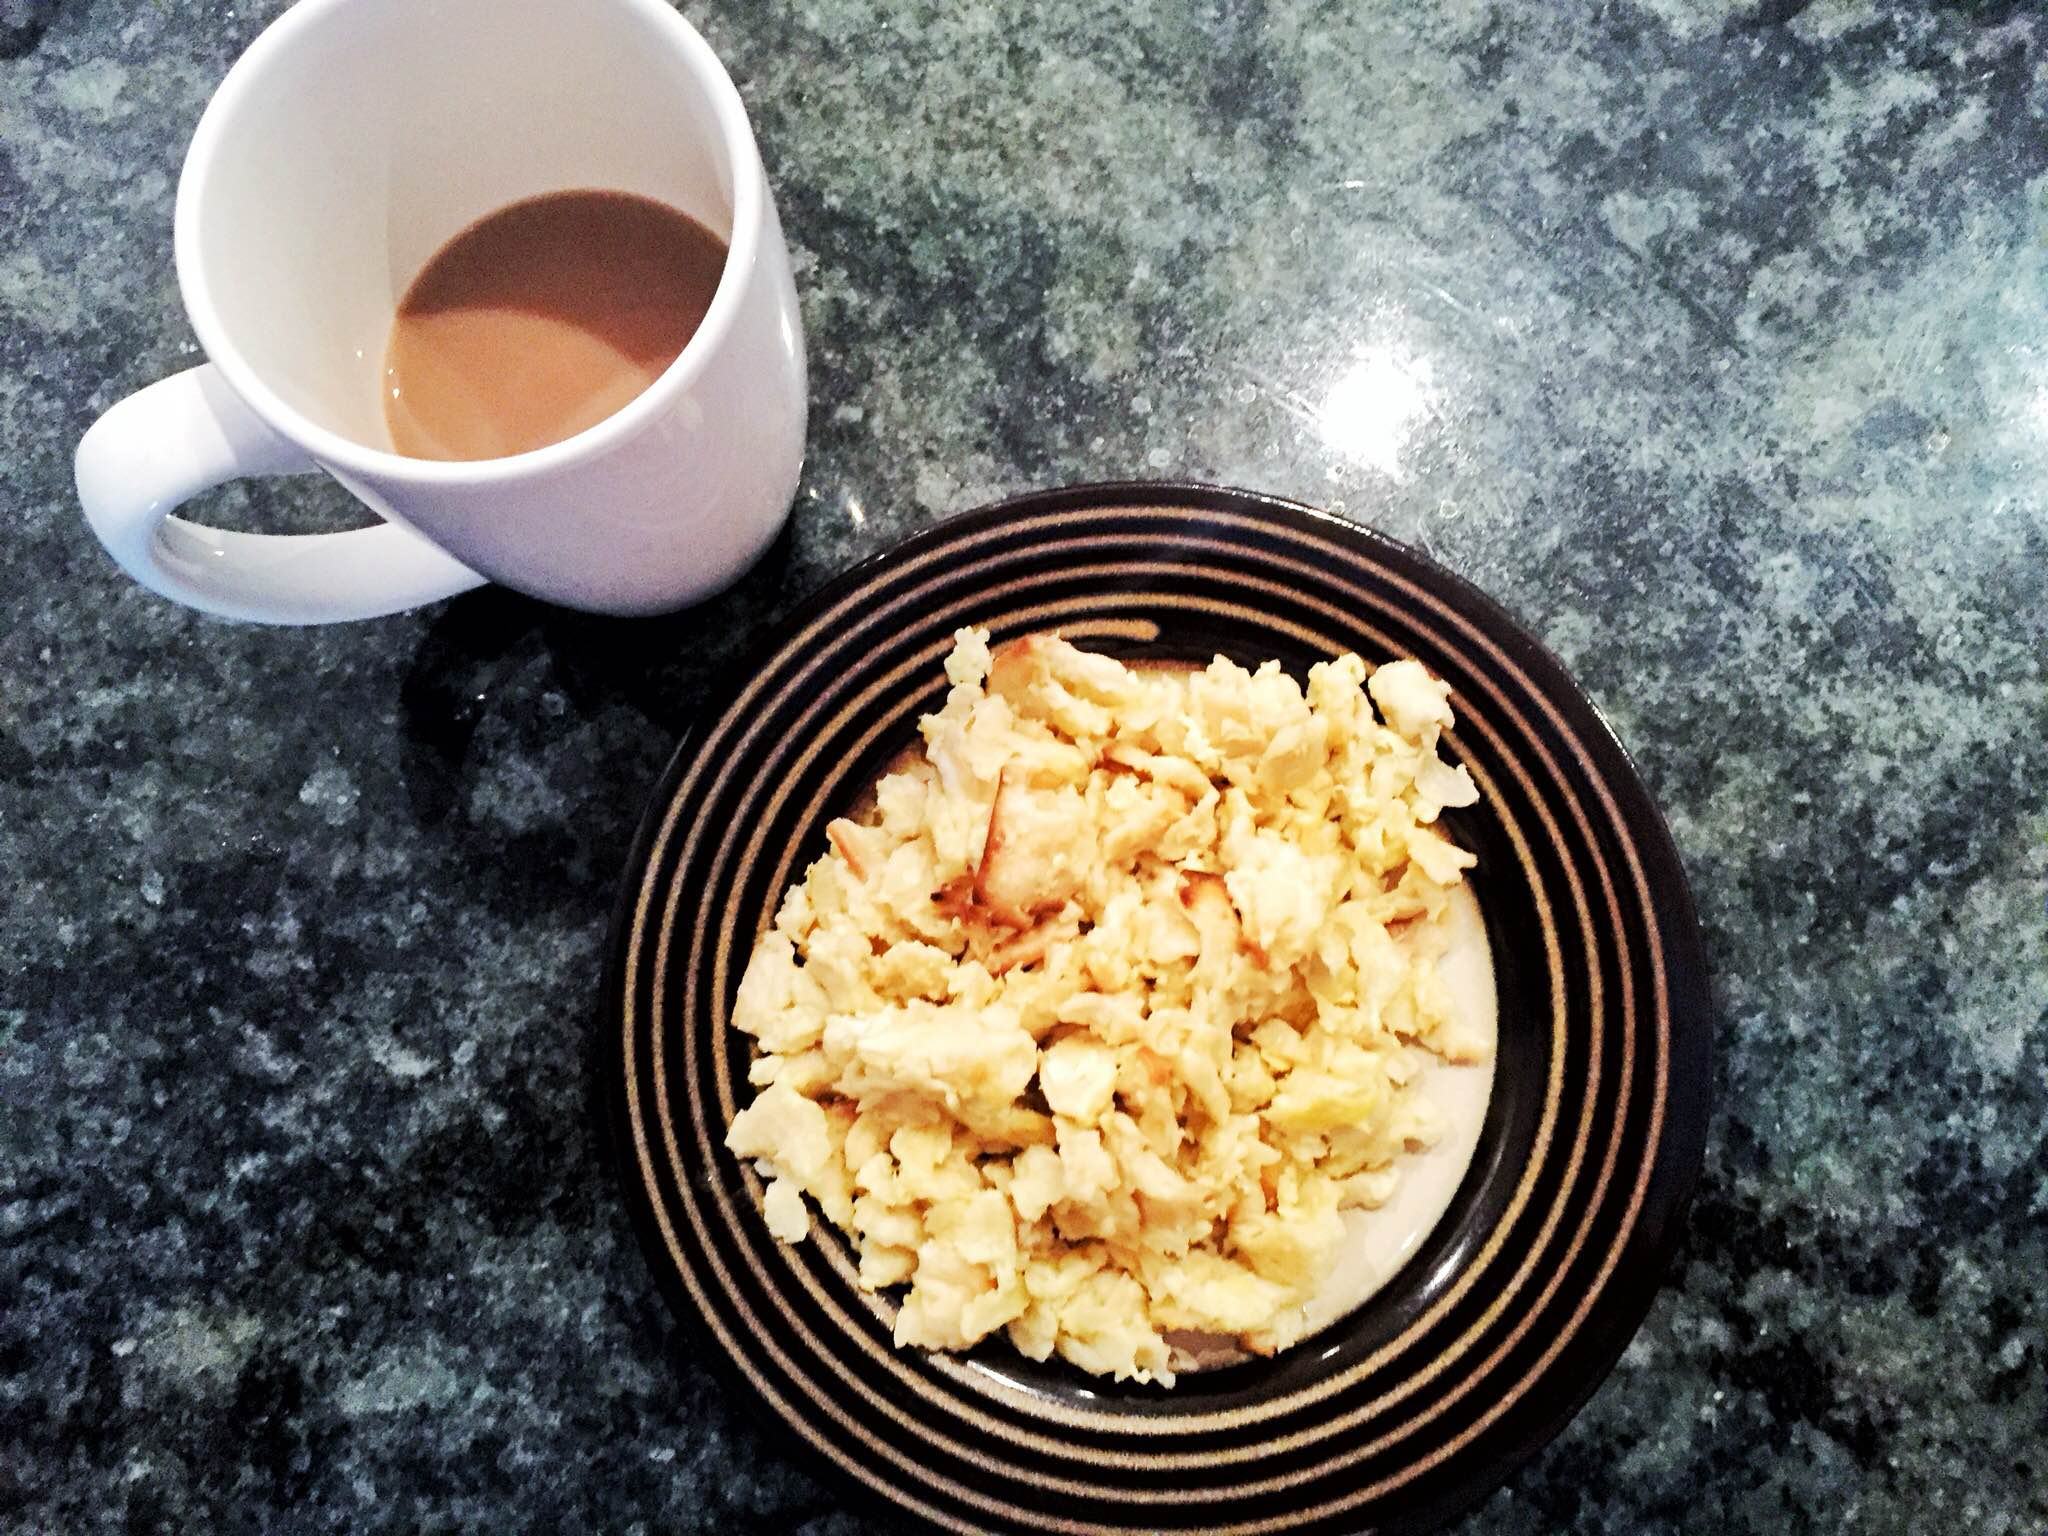 My matzoh brei - scrambled egg style, served with copious amounts of coffee.